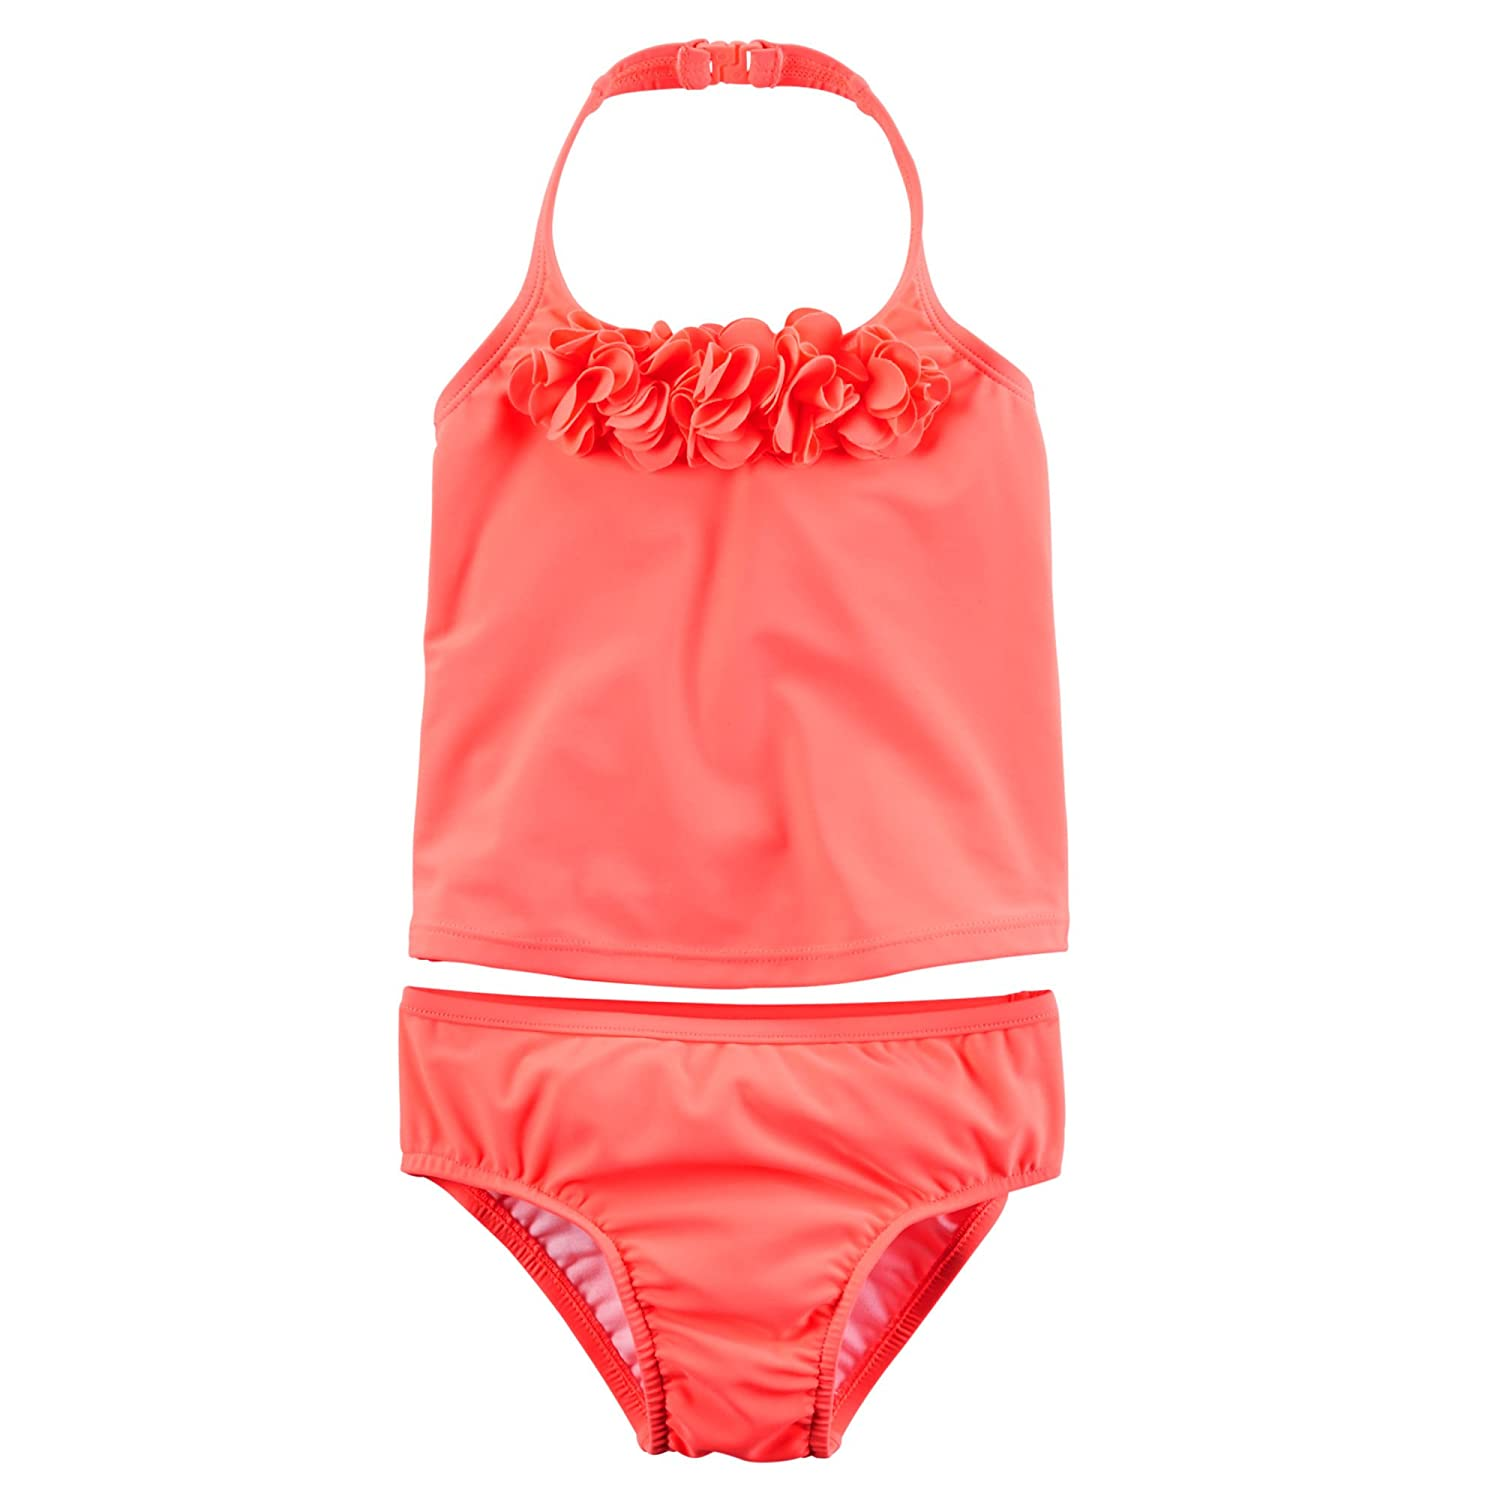 Carter's Baby Girls' Rosette Tankini Set 3-6 Months Coral SC16H14